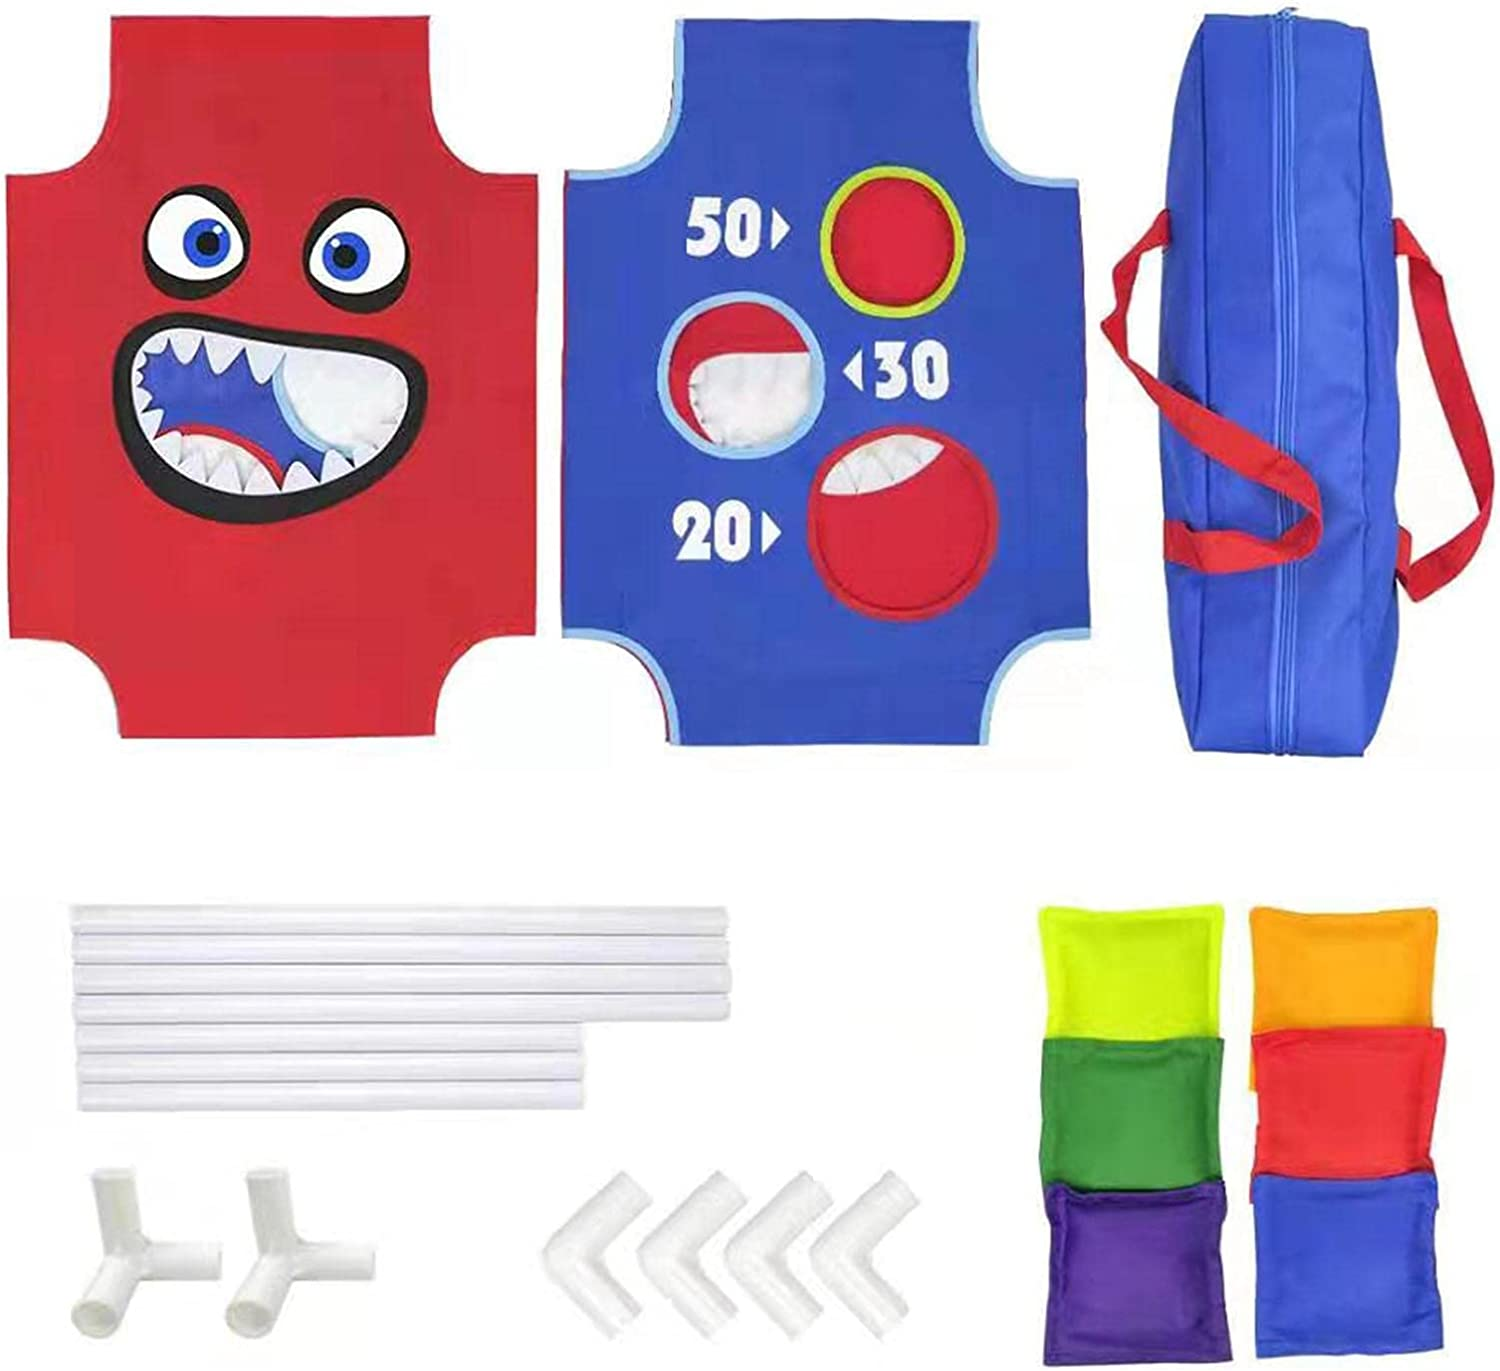 luning Bean Bag Toss Game Toy for Cartoon - Now free shipping Collapsible Toddlers Nippon regular agency